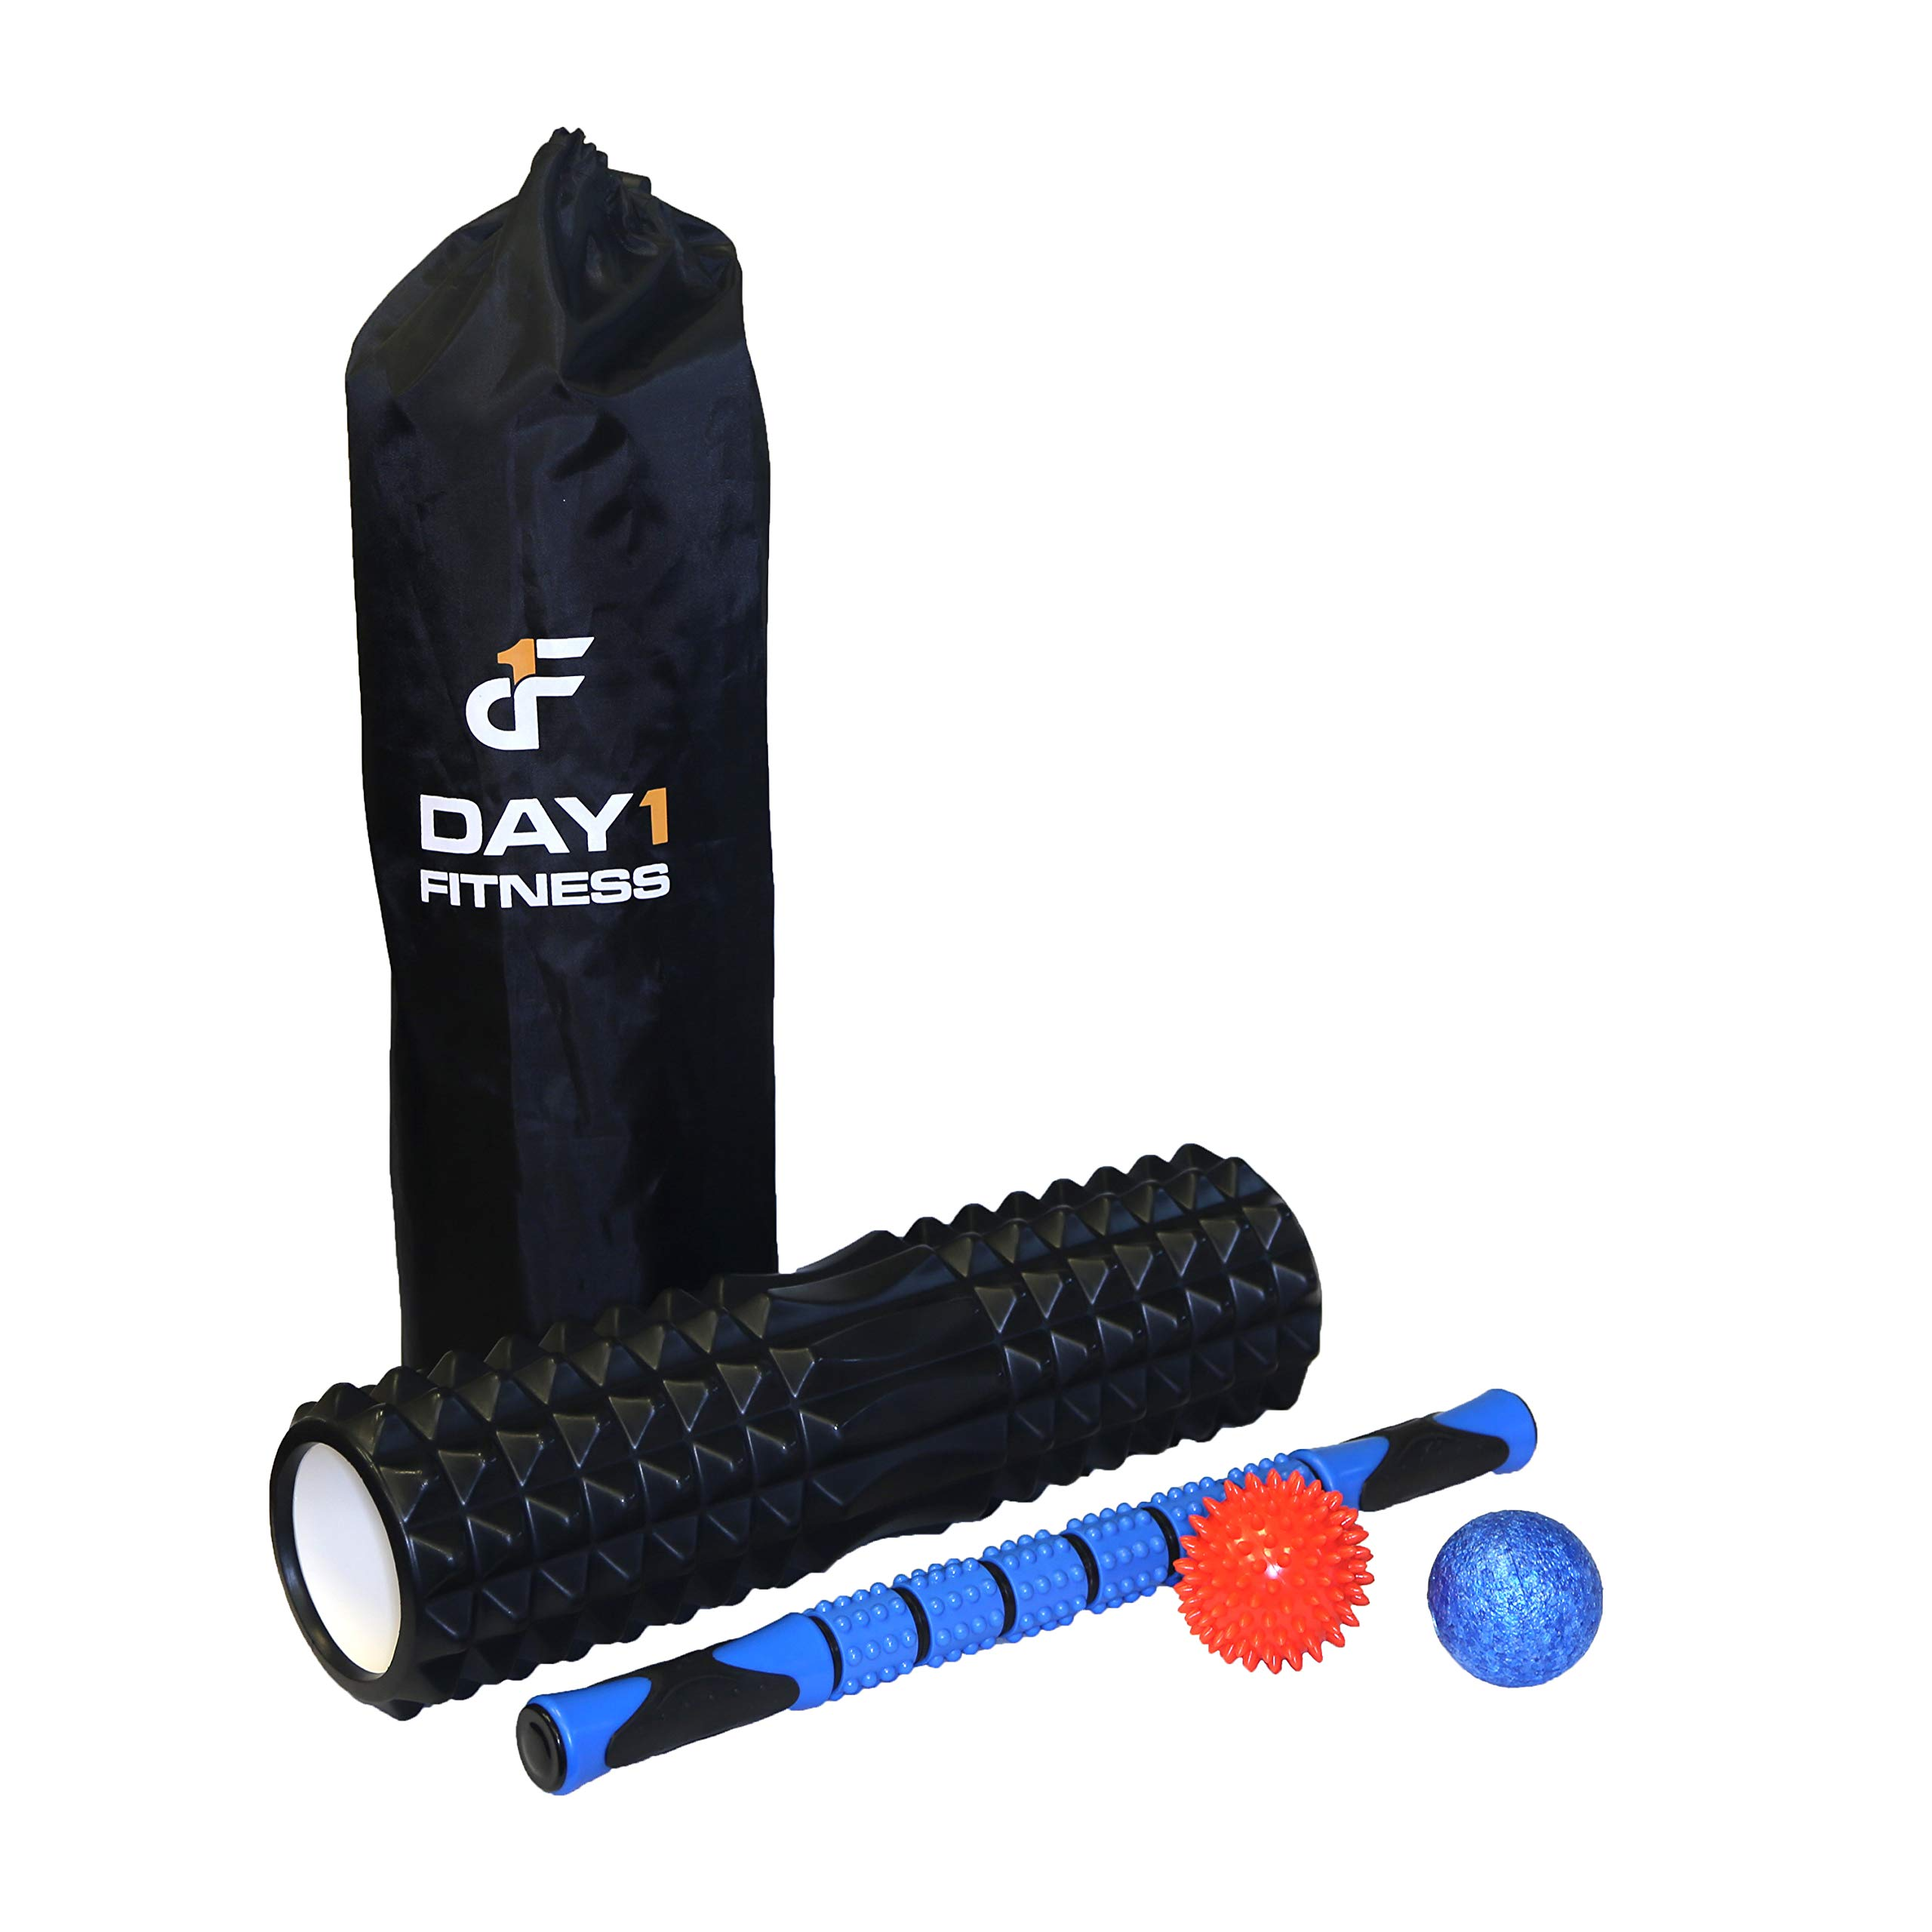 Day 1 Fitness 18'' Black Deluxe Massage Roller Kit - Ribbed Foam Roller, Deep Tissue Myofascial Knot Release Stick, Spiky Ball, High Density Ball, and Bag